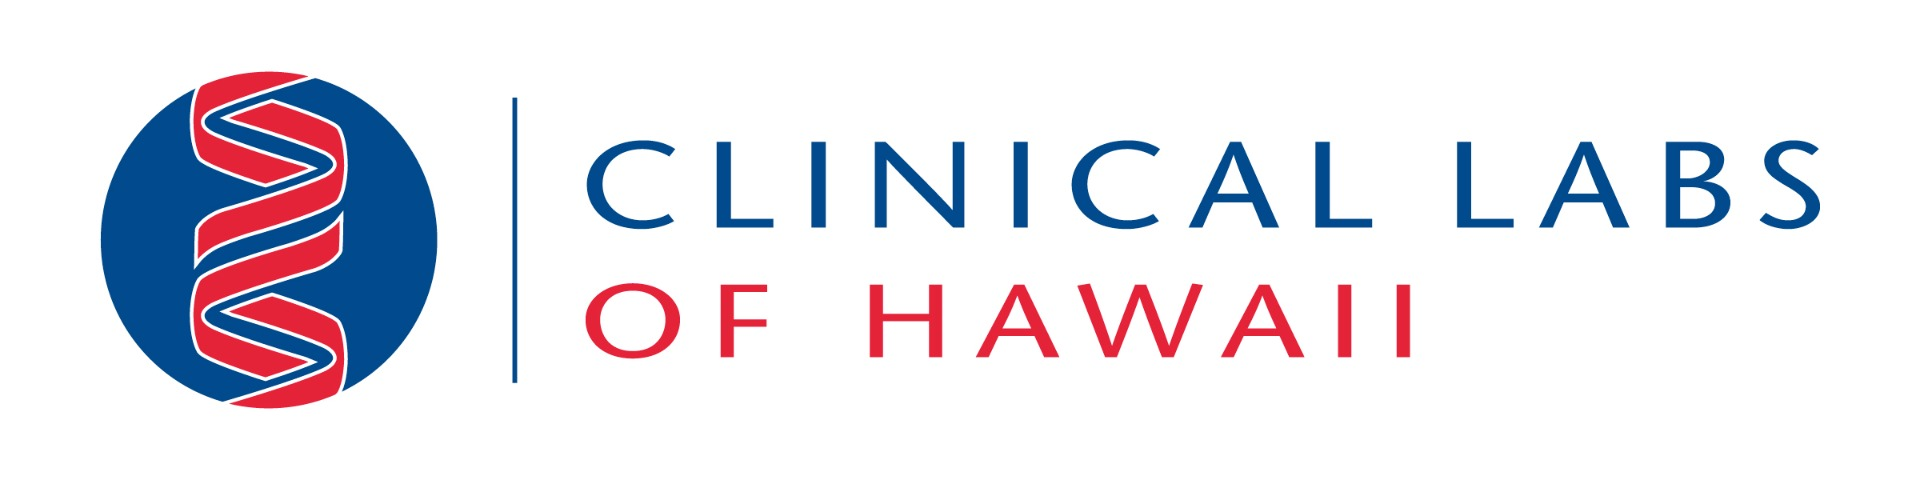 NEW FINAL Clinical Labs Logo.jpg